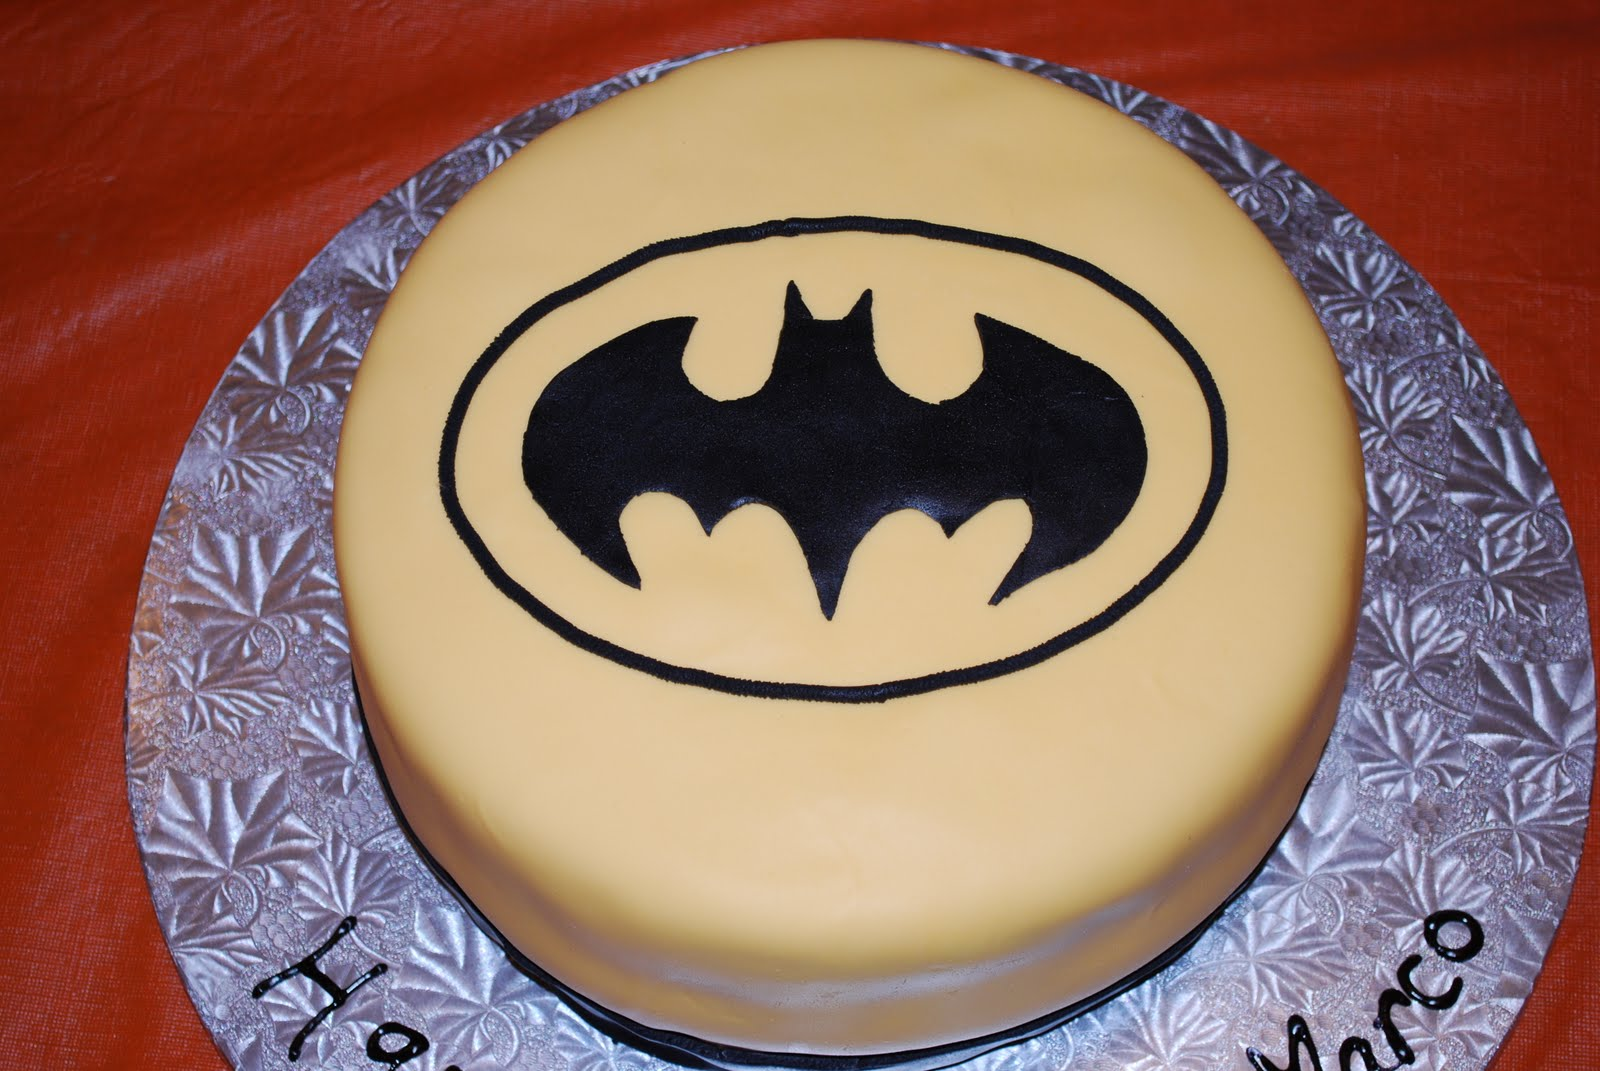 Batman cake template cake ideas and designs for Superman template for cake